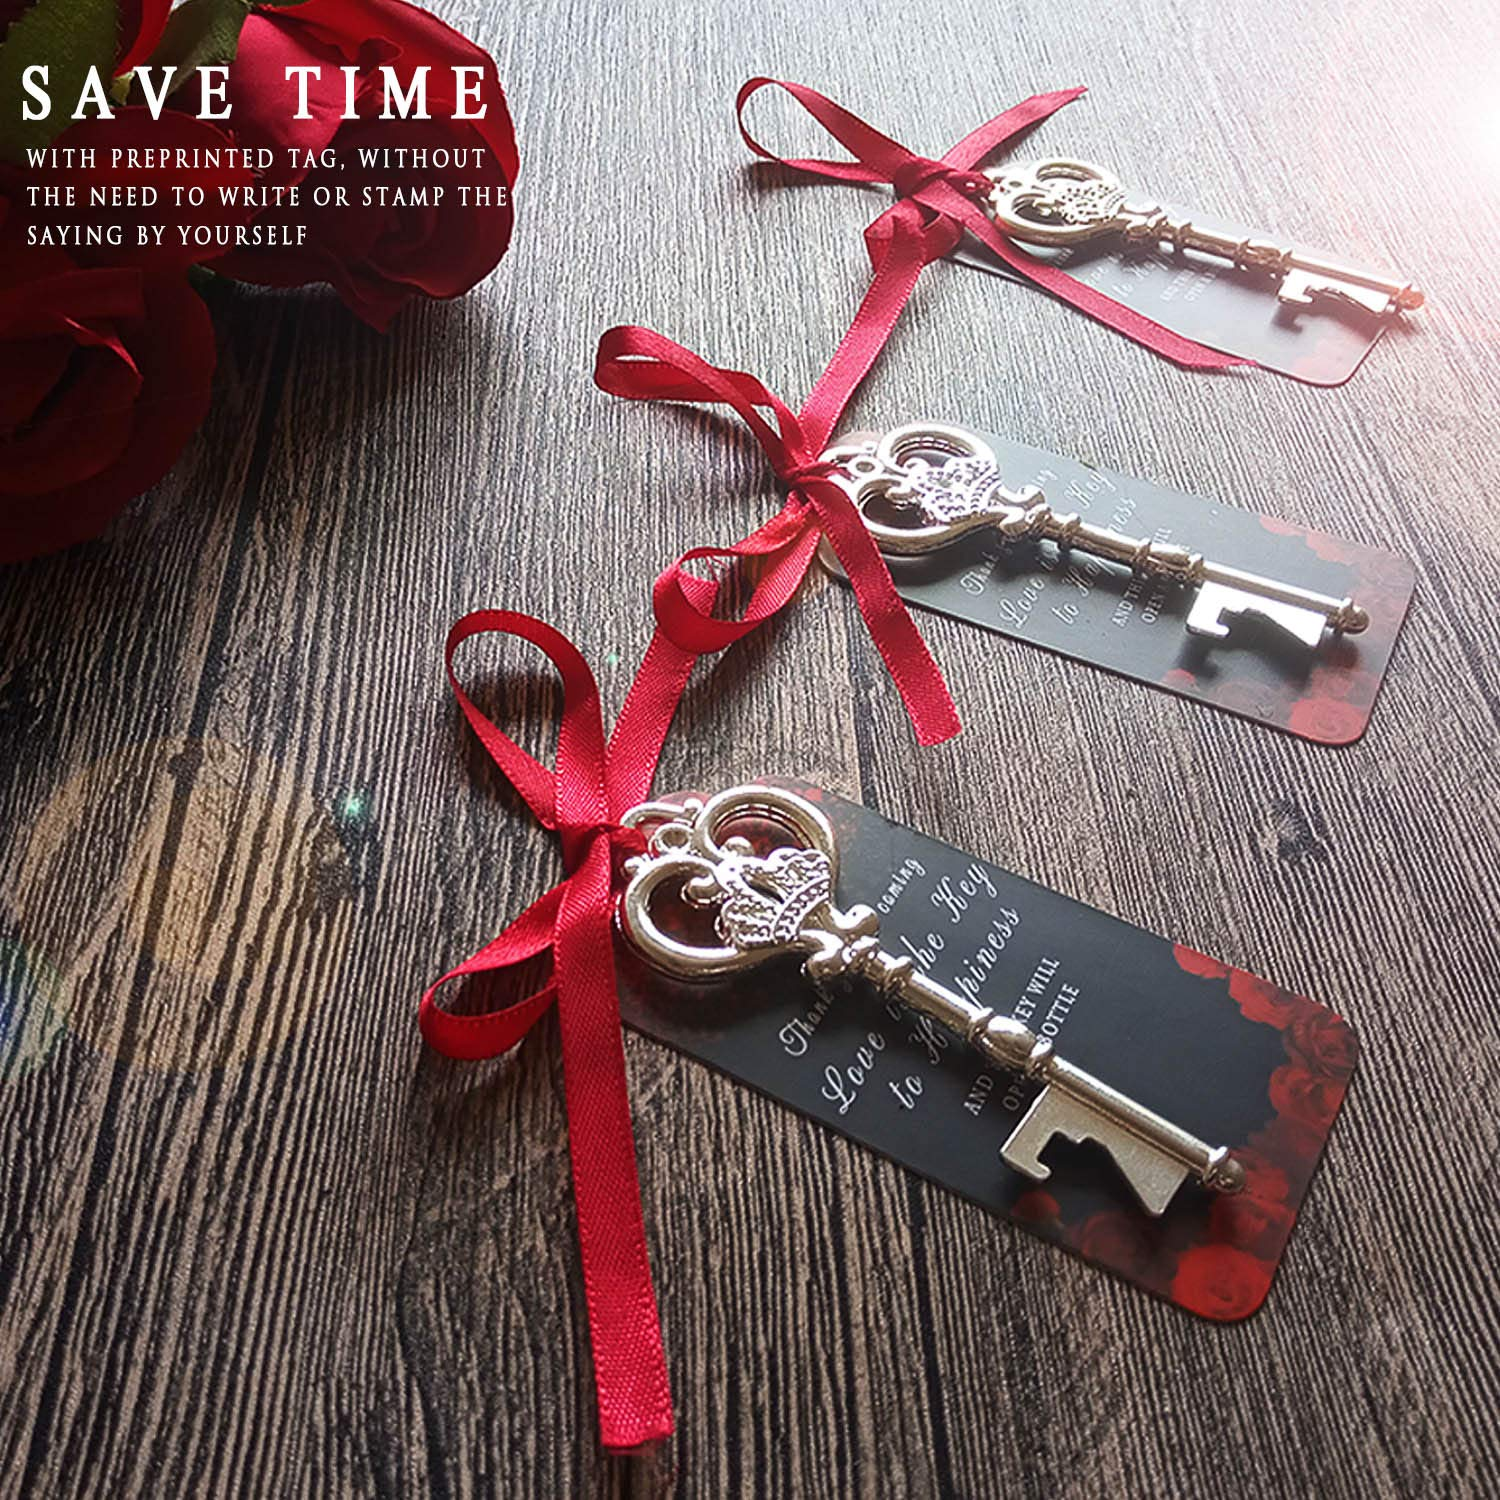 Bridal Shower Party Favors Souvenir Wedding Favors for Guests Red Ribbon Thank You for Coming Escort Card Bulk 25 Silver Key Bottle Opener Wedding Favor with Tag Vintage Skeleton Key Bottle Opener